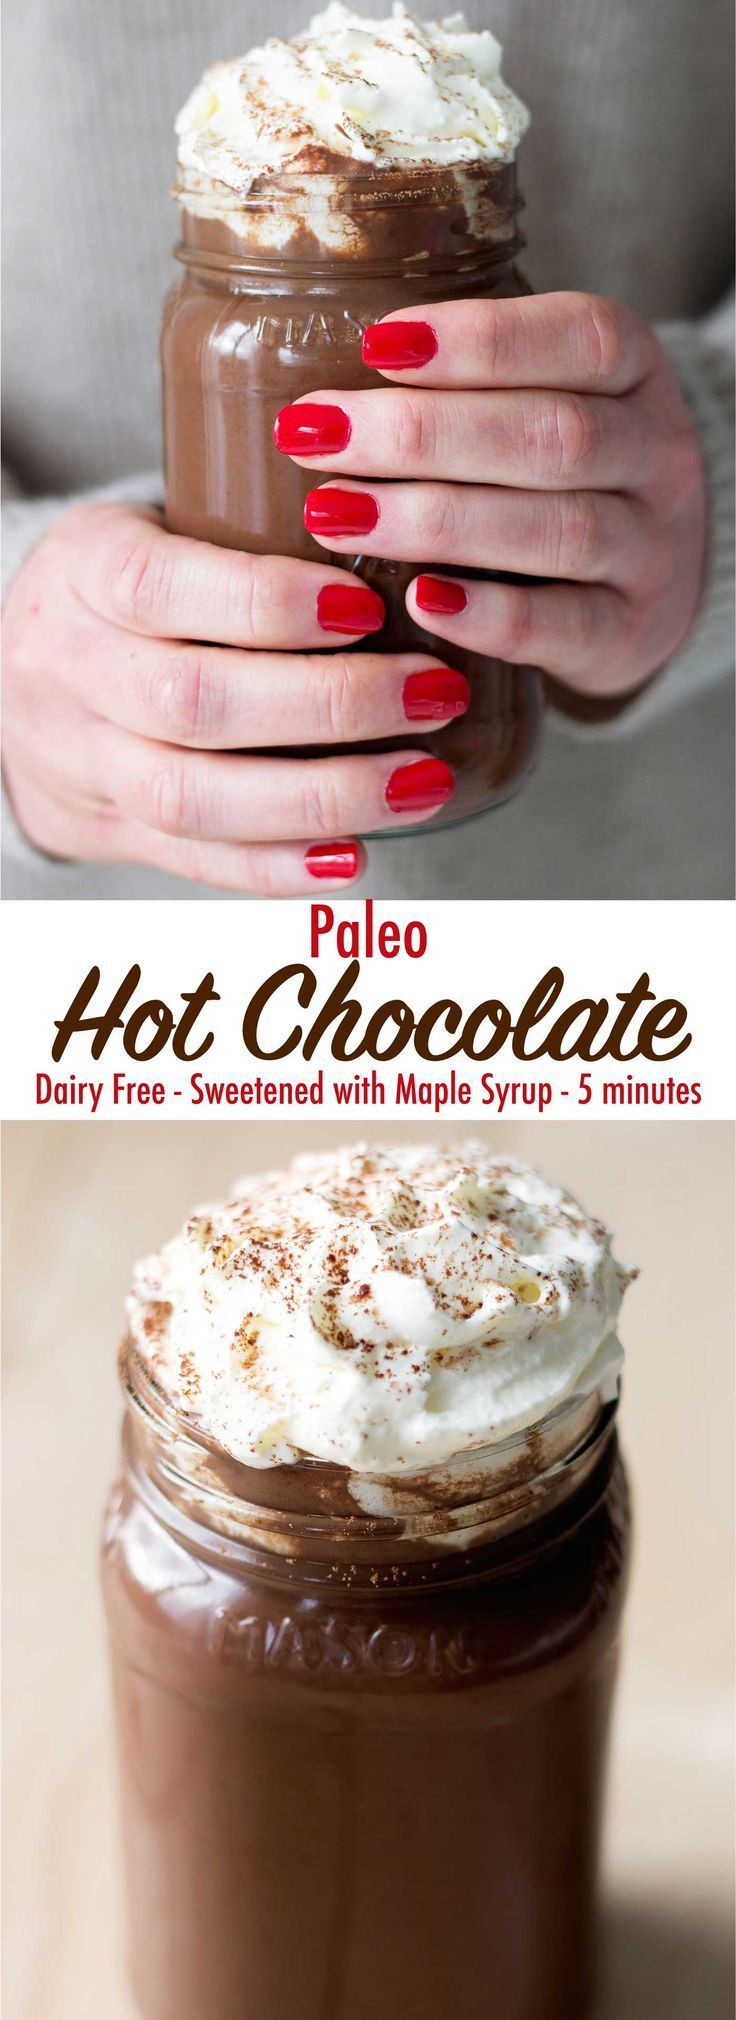 Cozy up with this delicious and decadent paleo hot chocolate. It is dairy free, refined sugar free, and only takes 5 minutes to make!